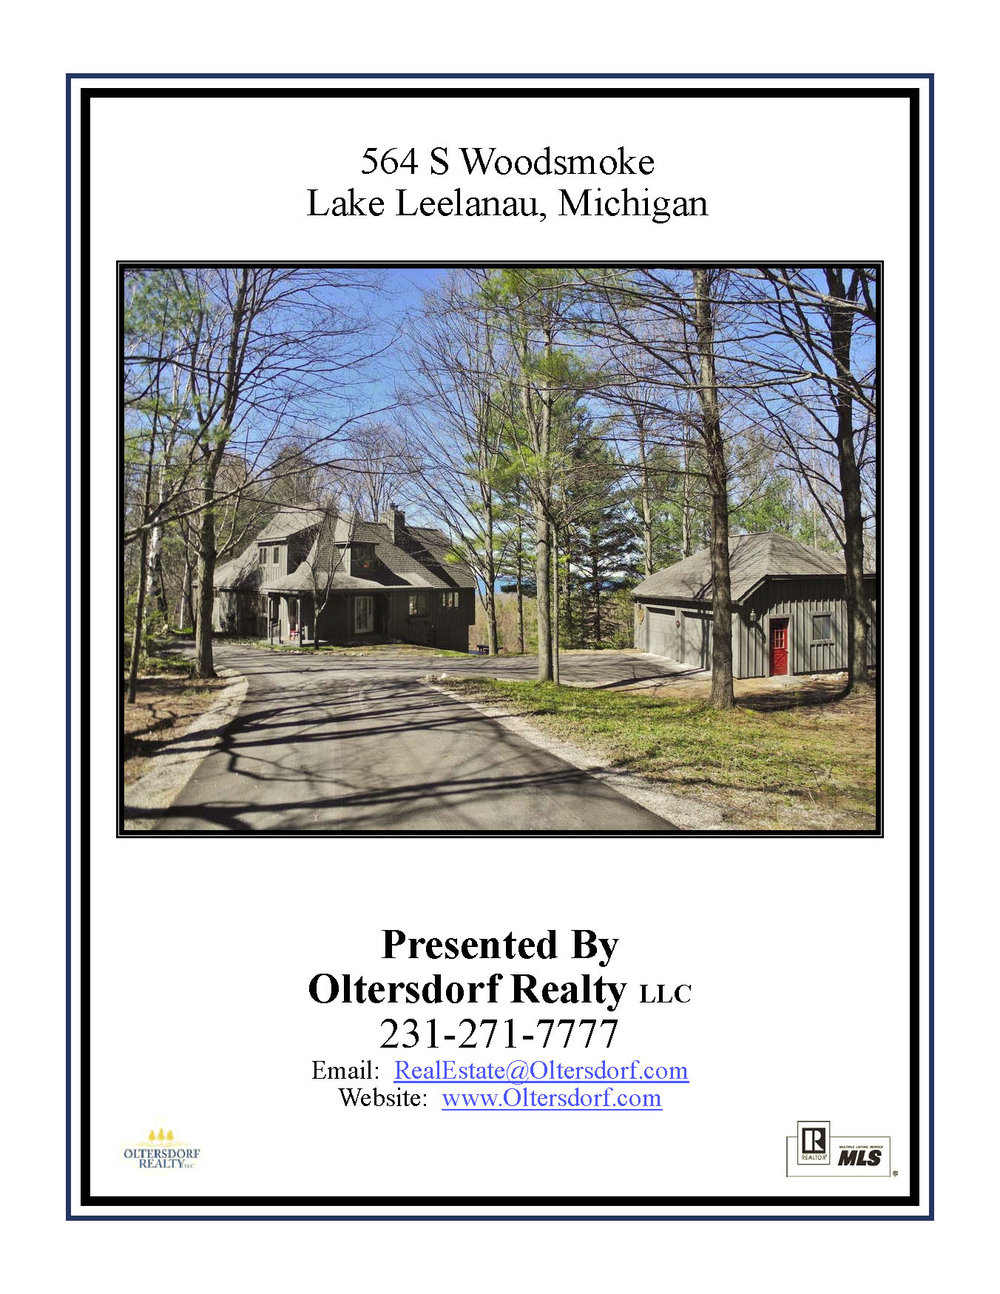 564 S Woodsmoke Drive, Lake Leelanau, MI – Sunset Lake Michigan Water Views - For Sale by Oltersdorf Realty - Marketing Packet (1).jpg